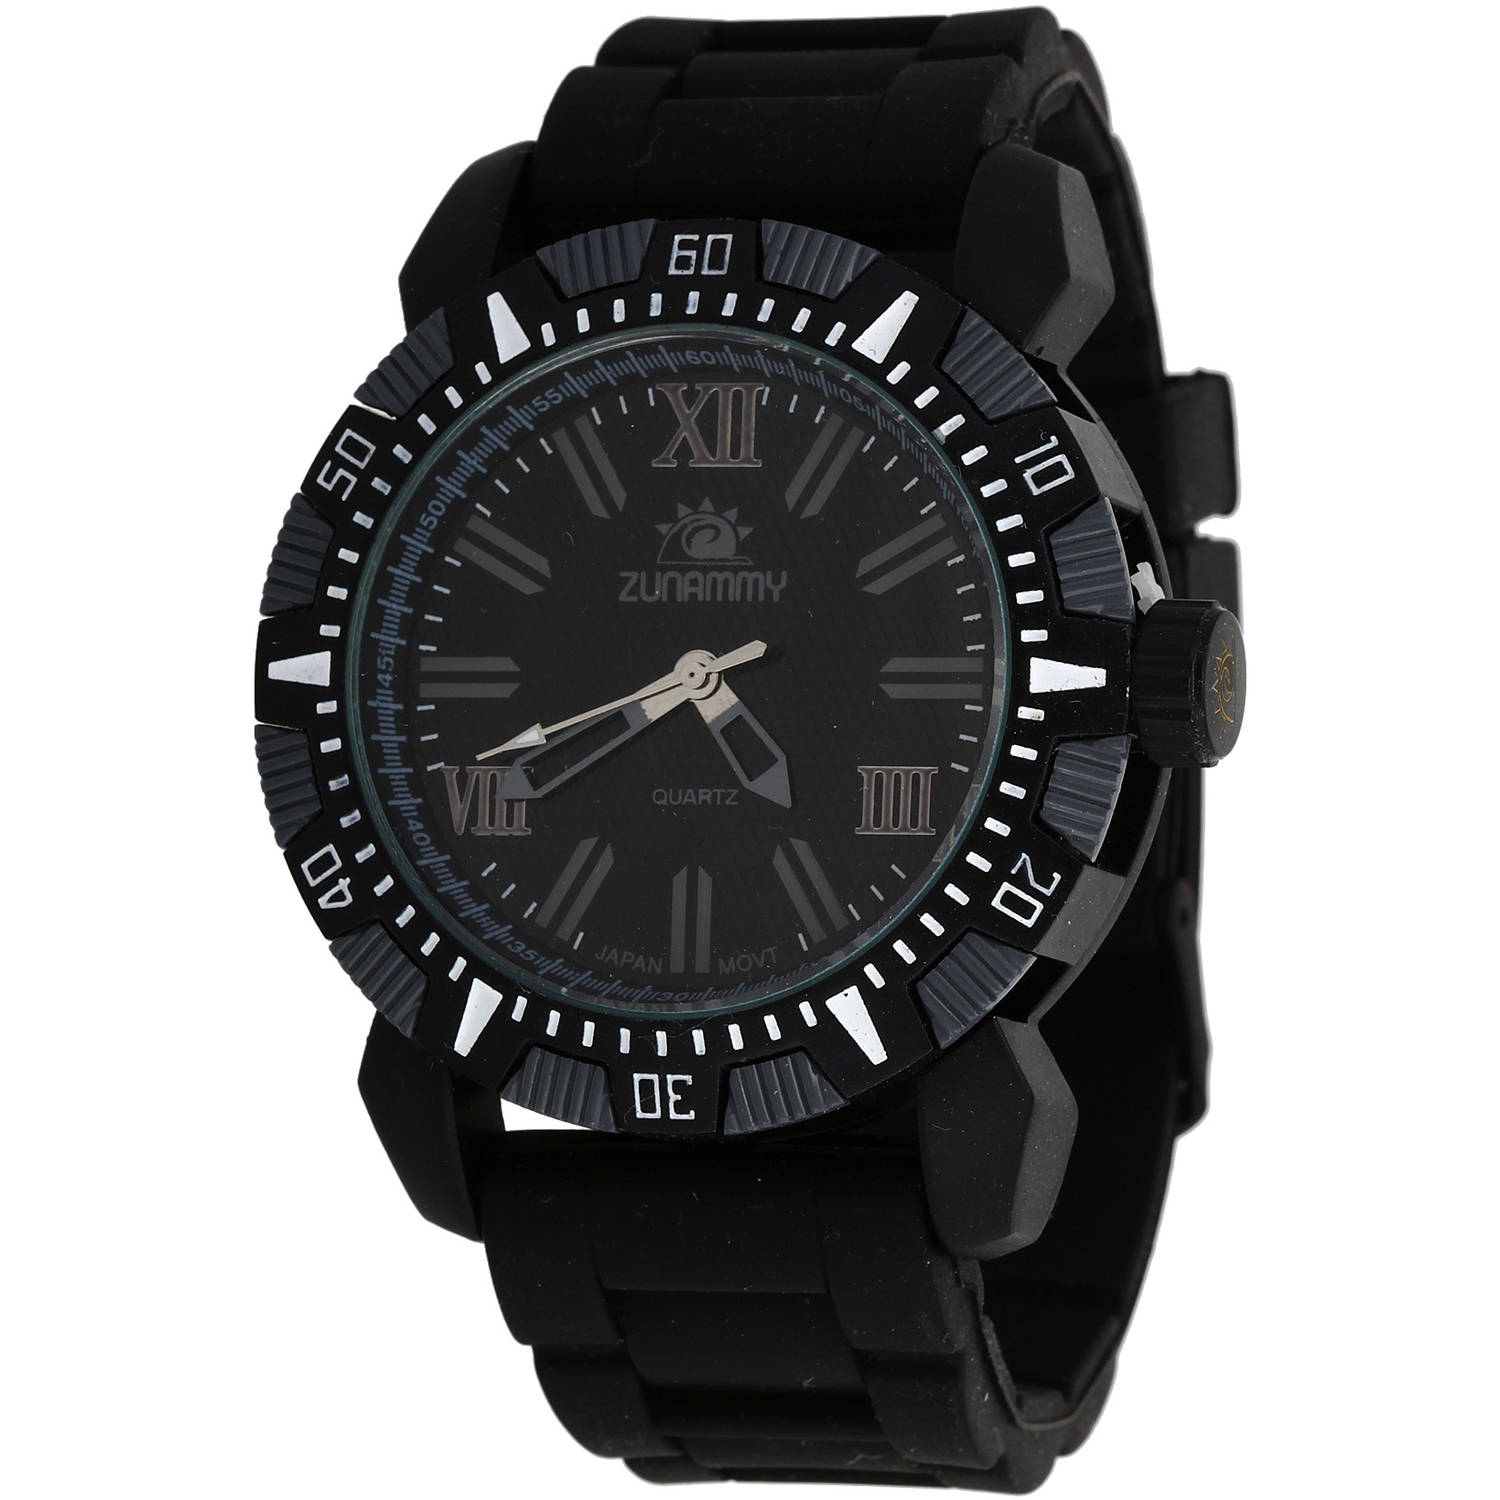 Zunammy Men's Sport and Fashion Watch, Black Rubber Strap